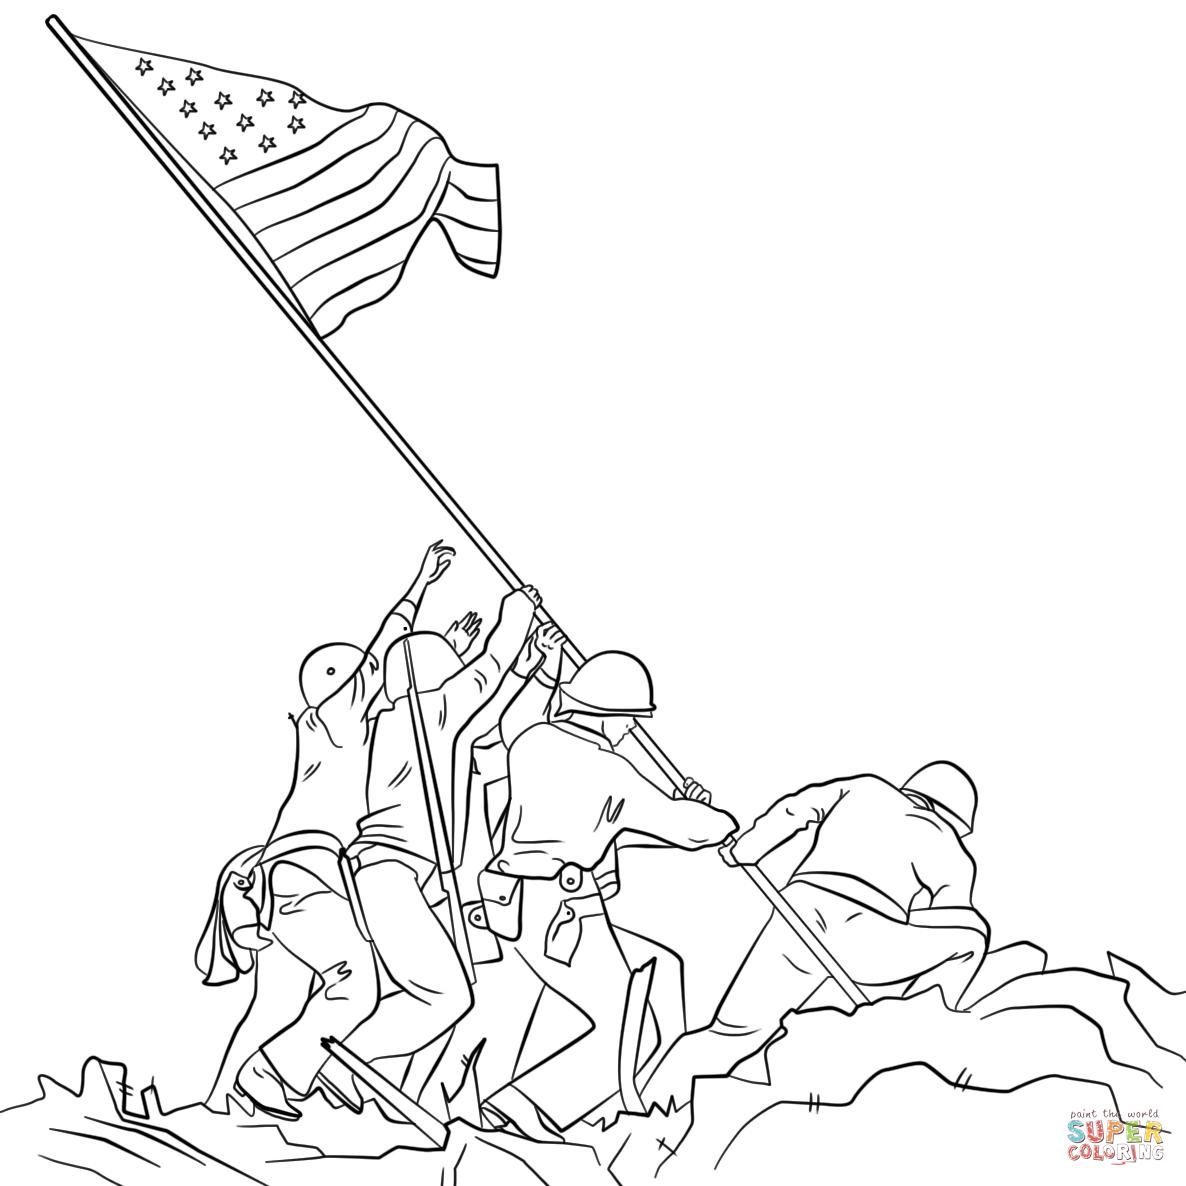 1186x1186 American Soldier Coloring Pages Coloring Pages